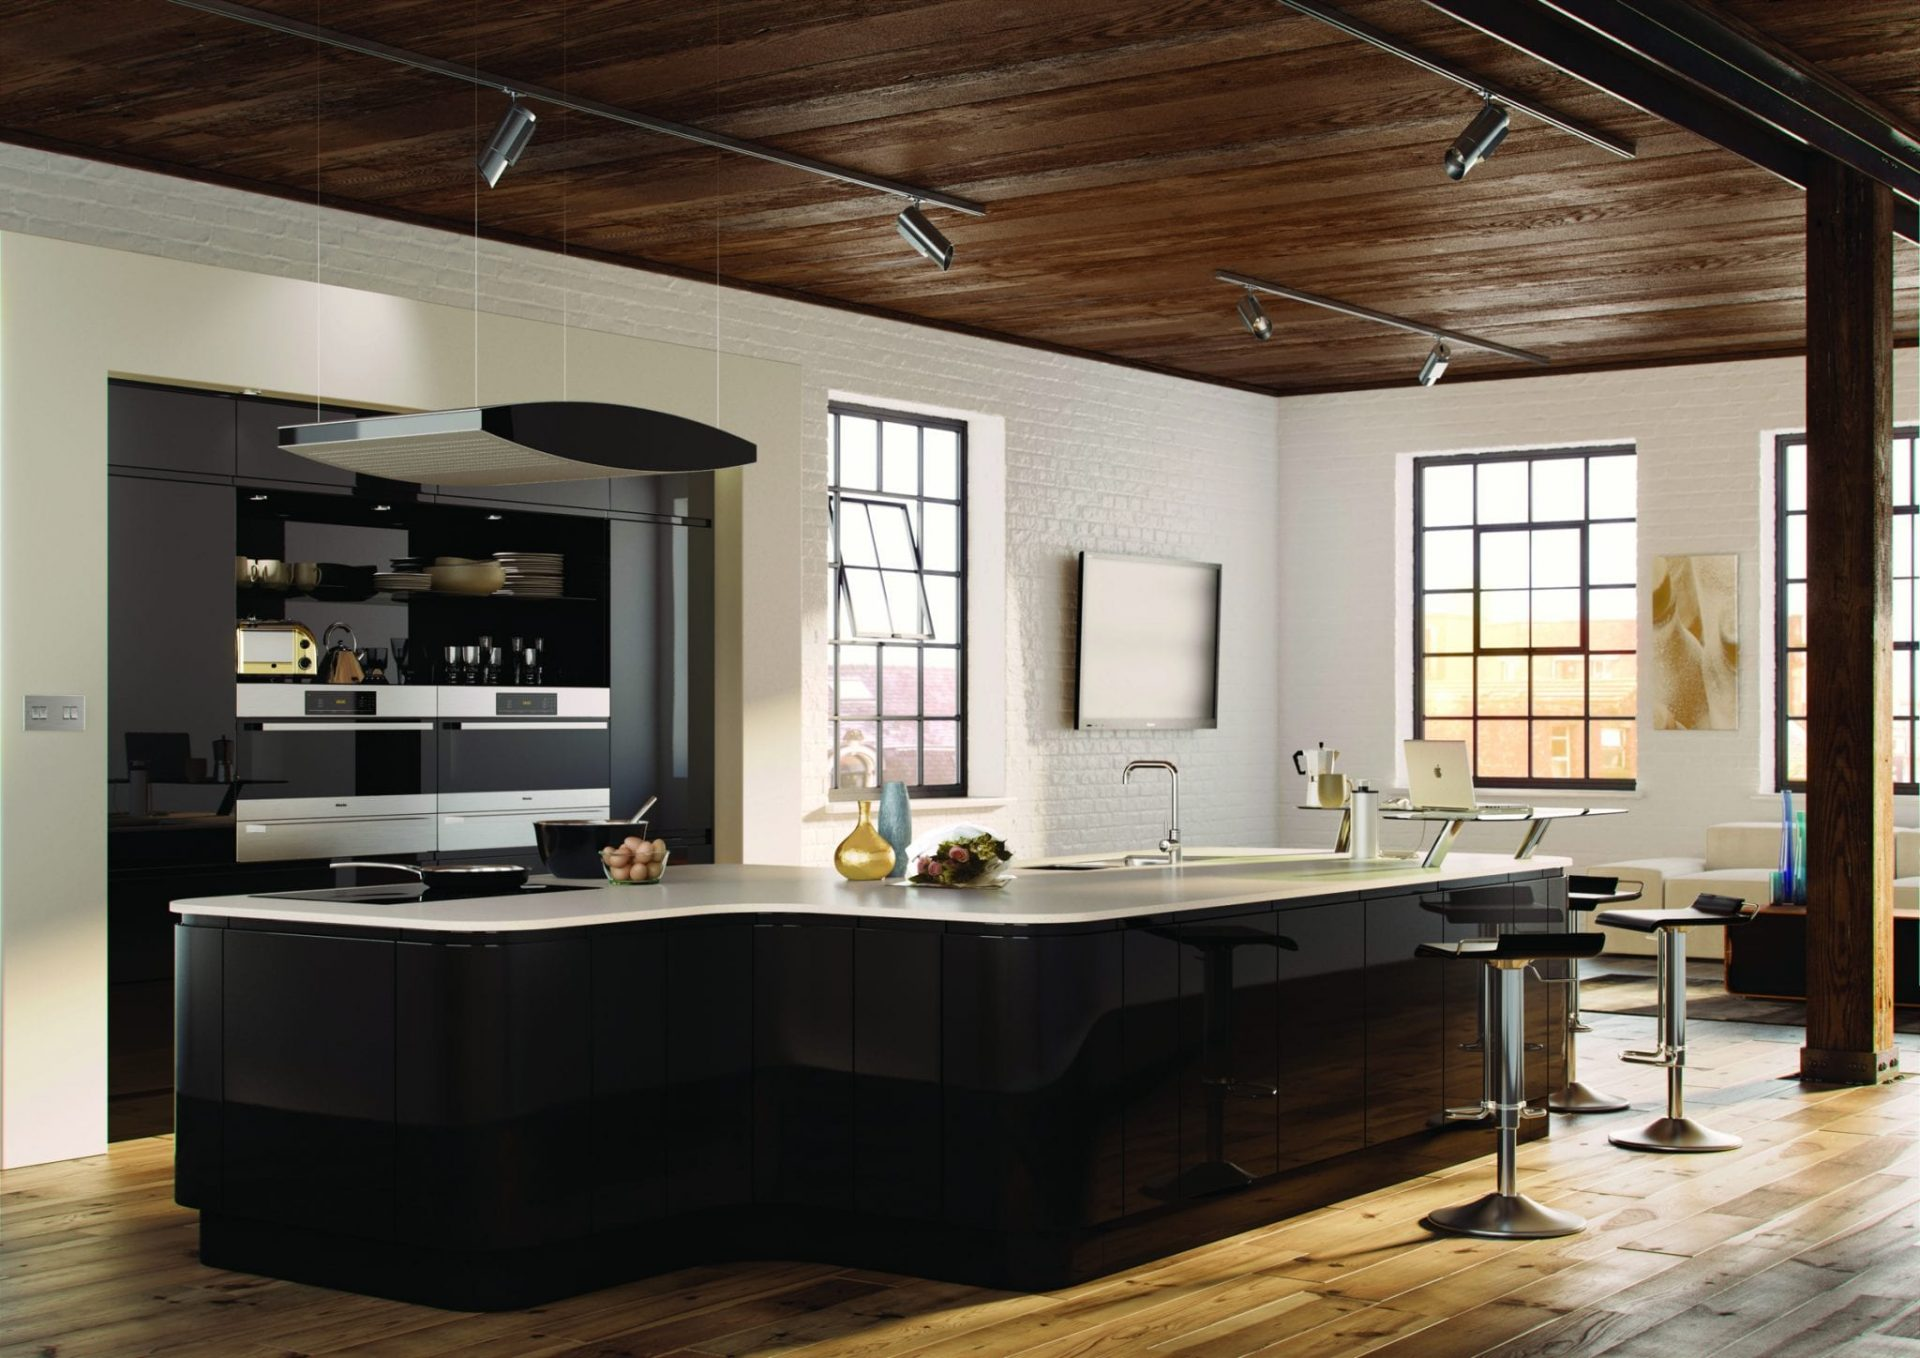 Black gloss kitchen with island